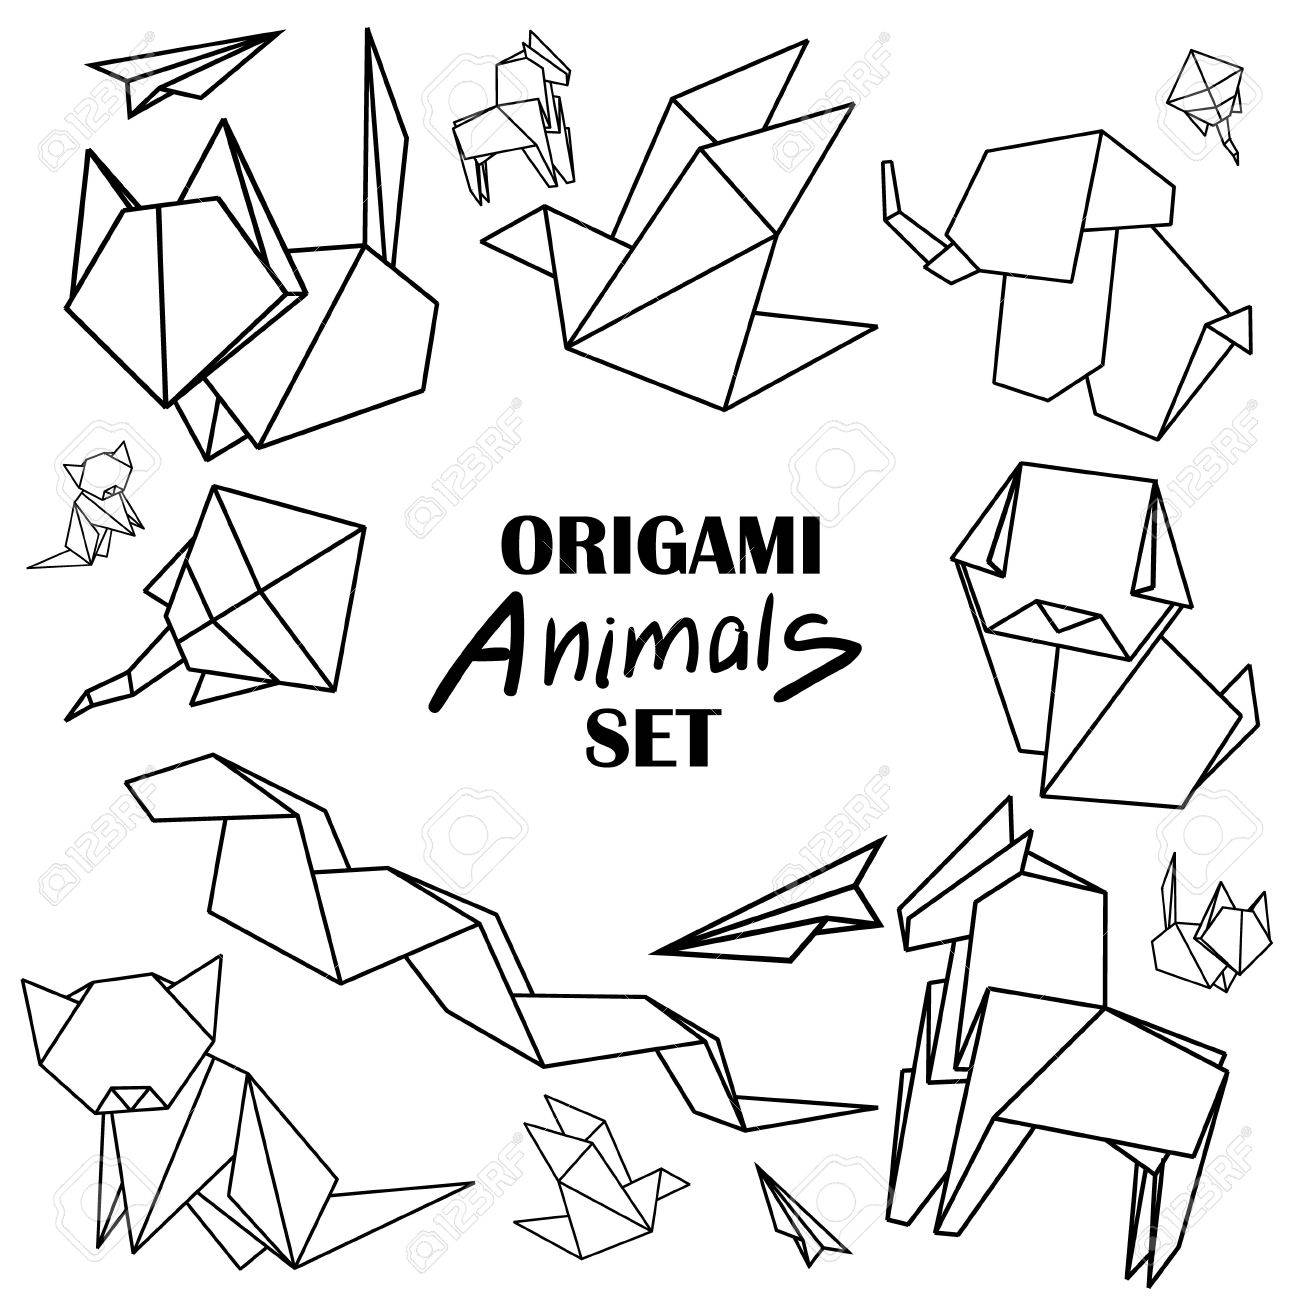 Origami Animals Set From Paper Snake Dog Horse Cat Bird